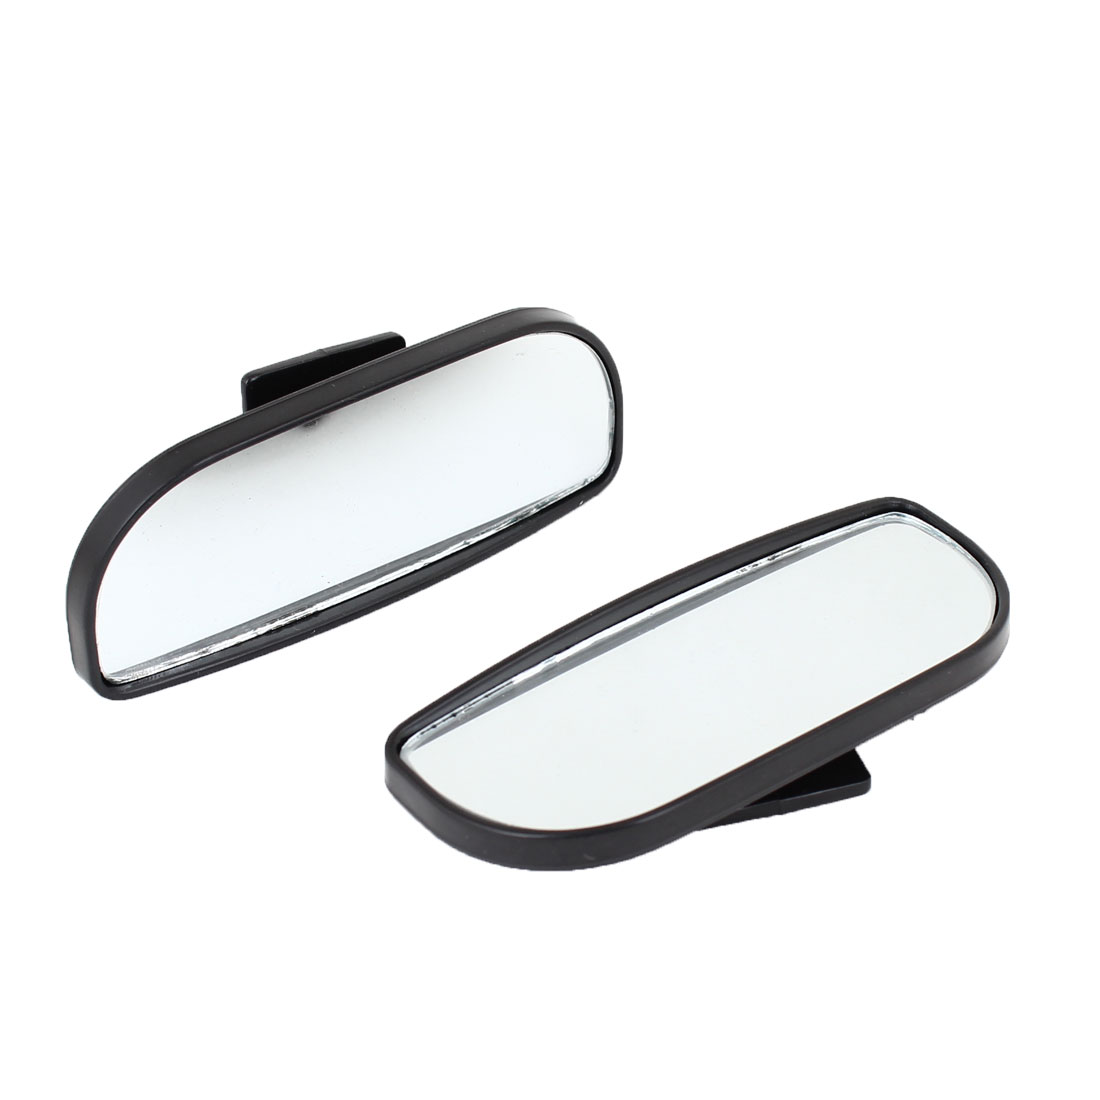 2Pcs Adjustable Oval Convex Adhesive Car Wide Angle Blind Spot Mirror Black